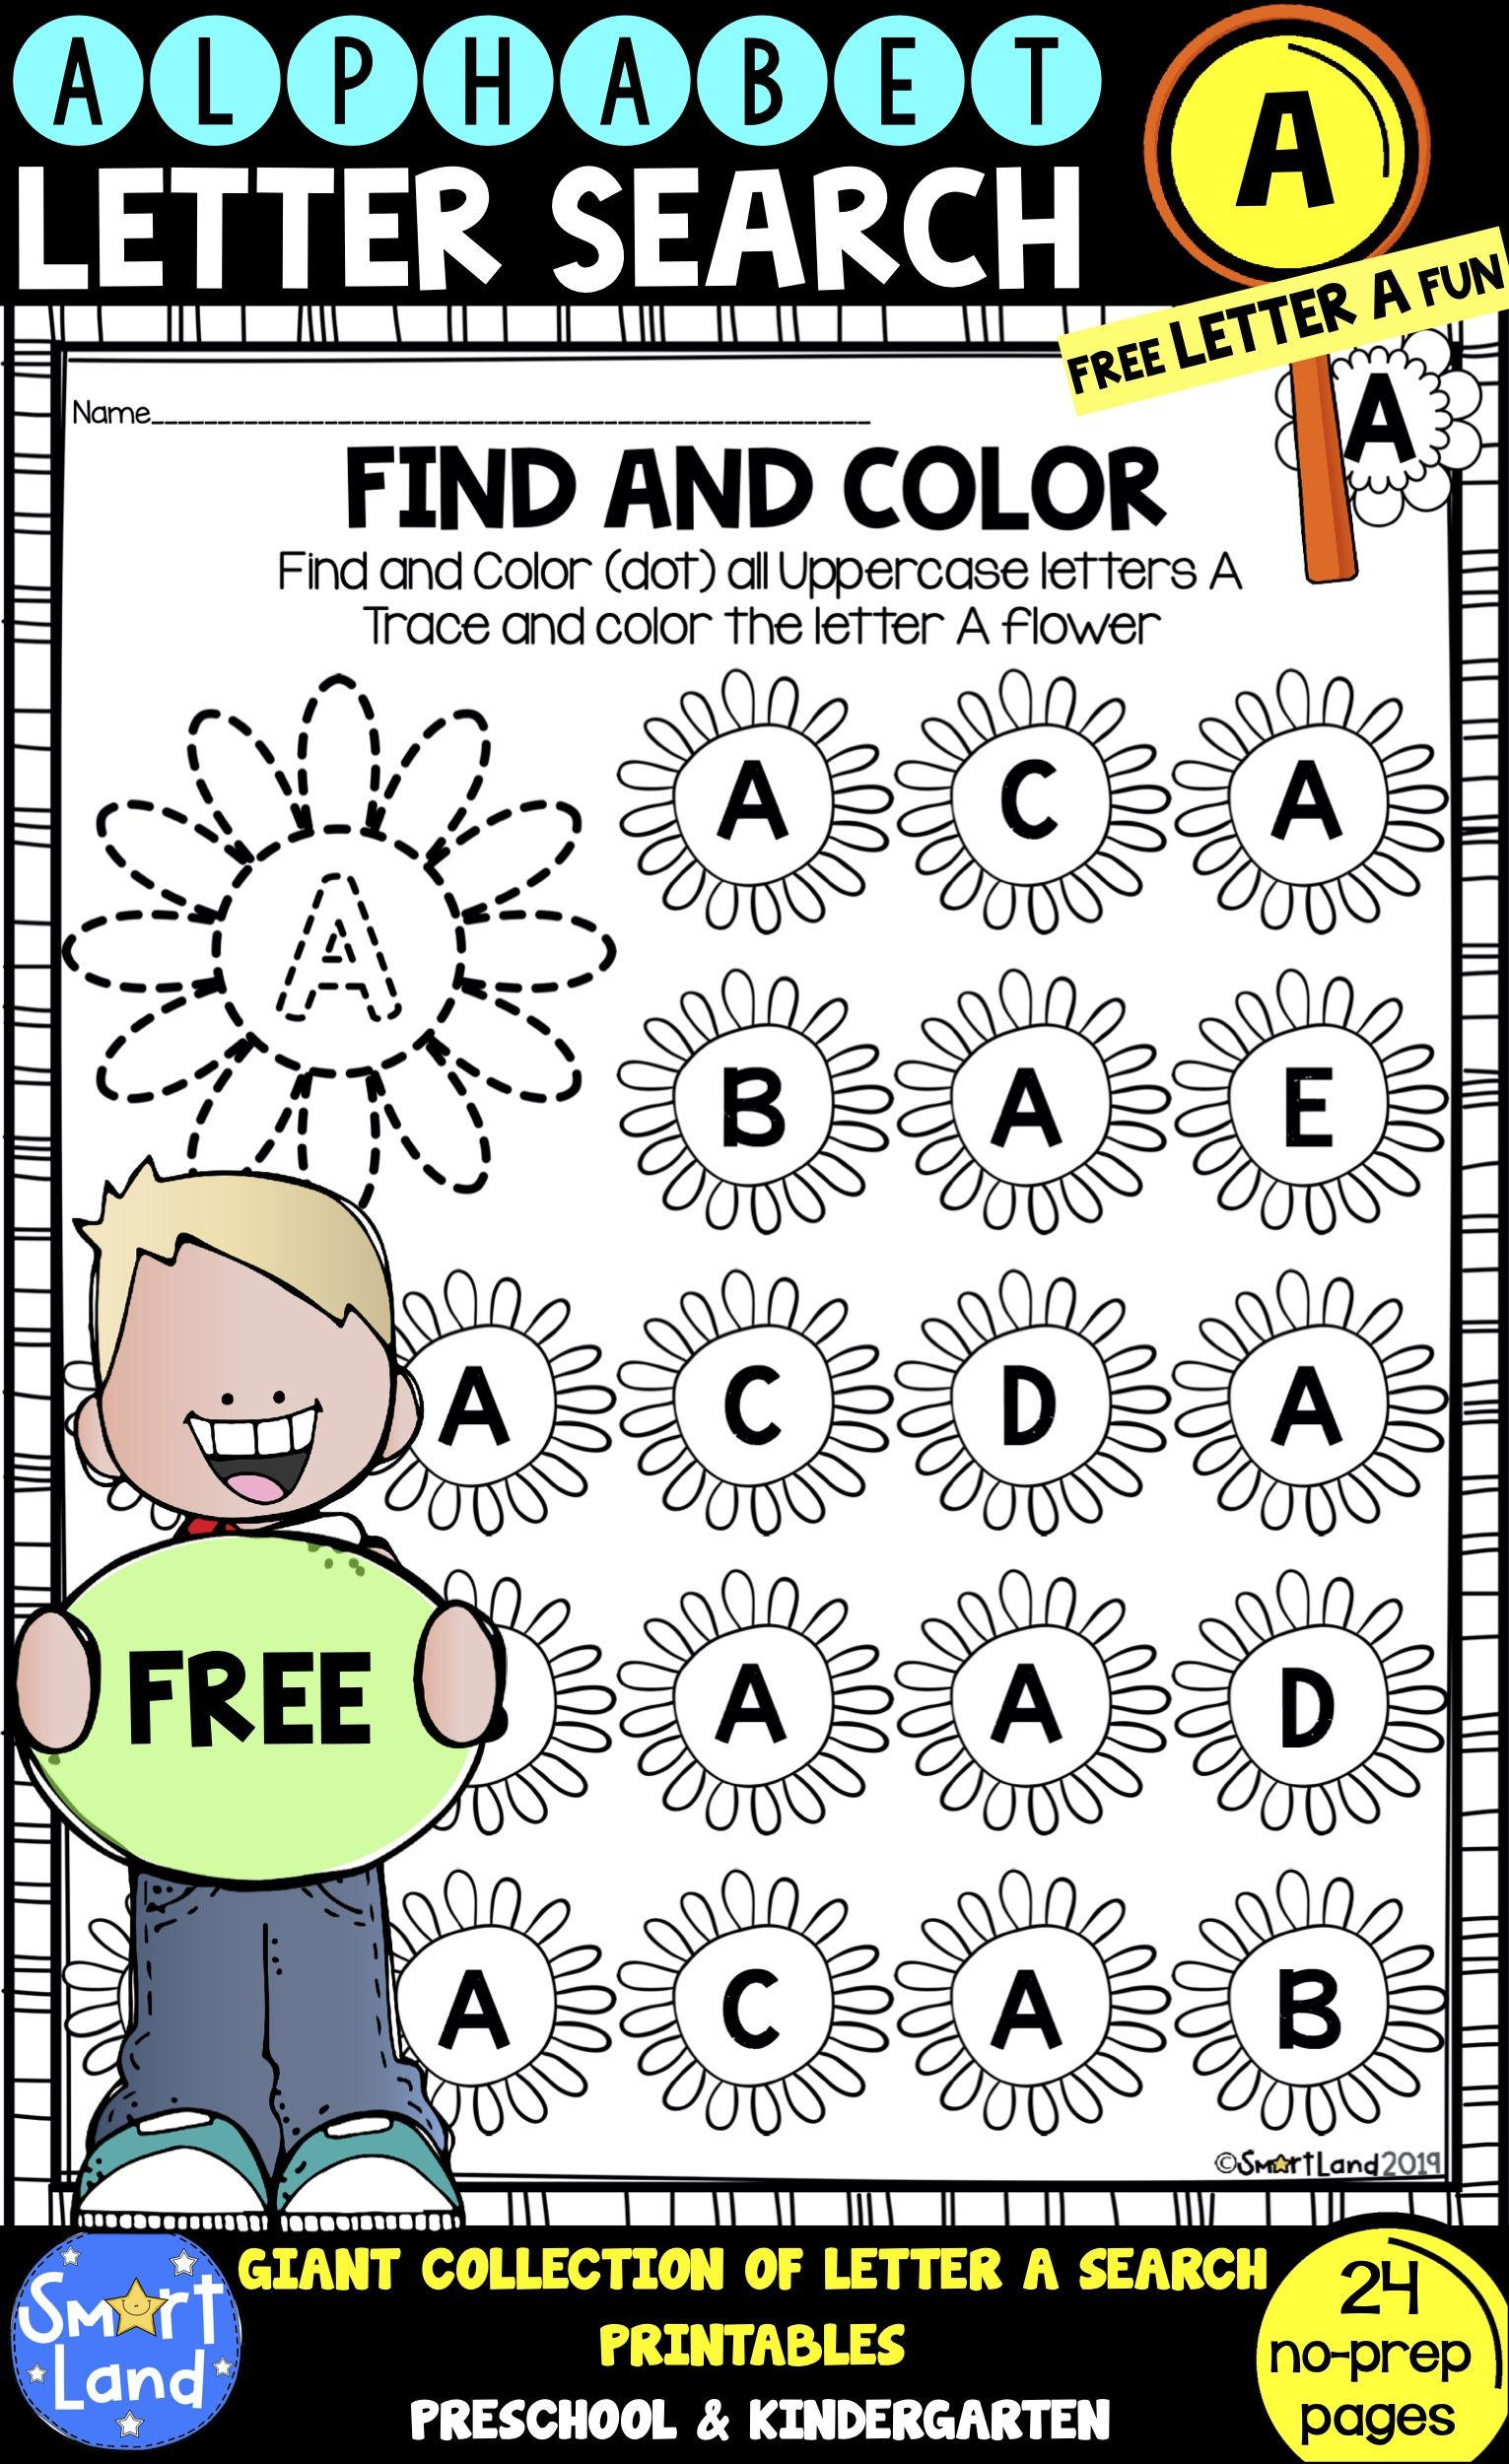 Alphabet Practice Free Letter A Search Worksheets Letter Practice Preschool Alphabet Practice Kindergarten Worksheets [ 2500 x 1531 Pixel ]